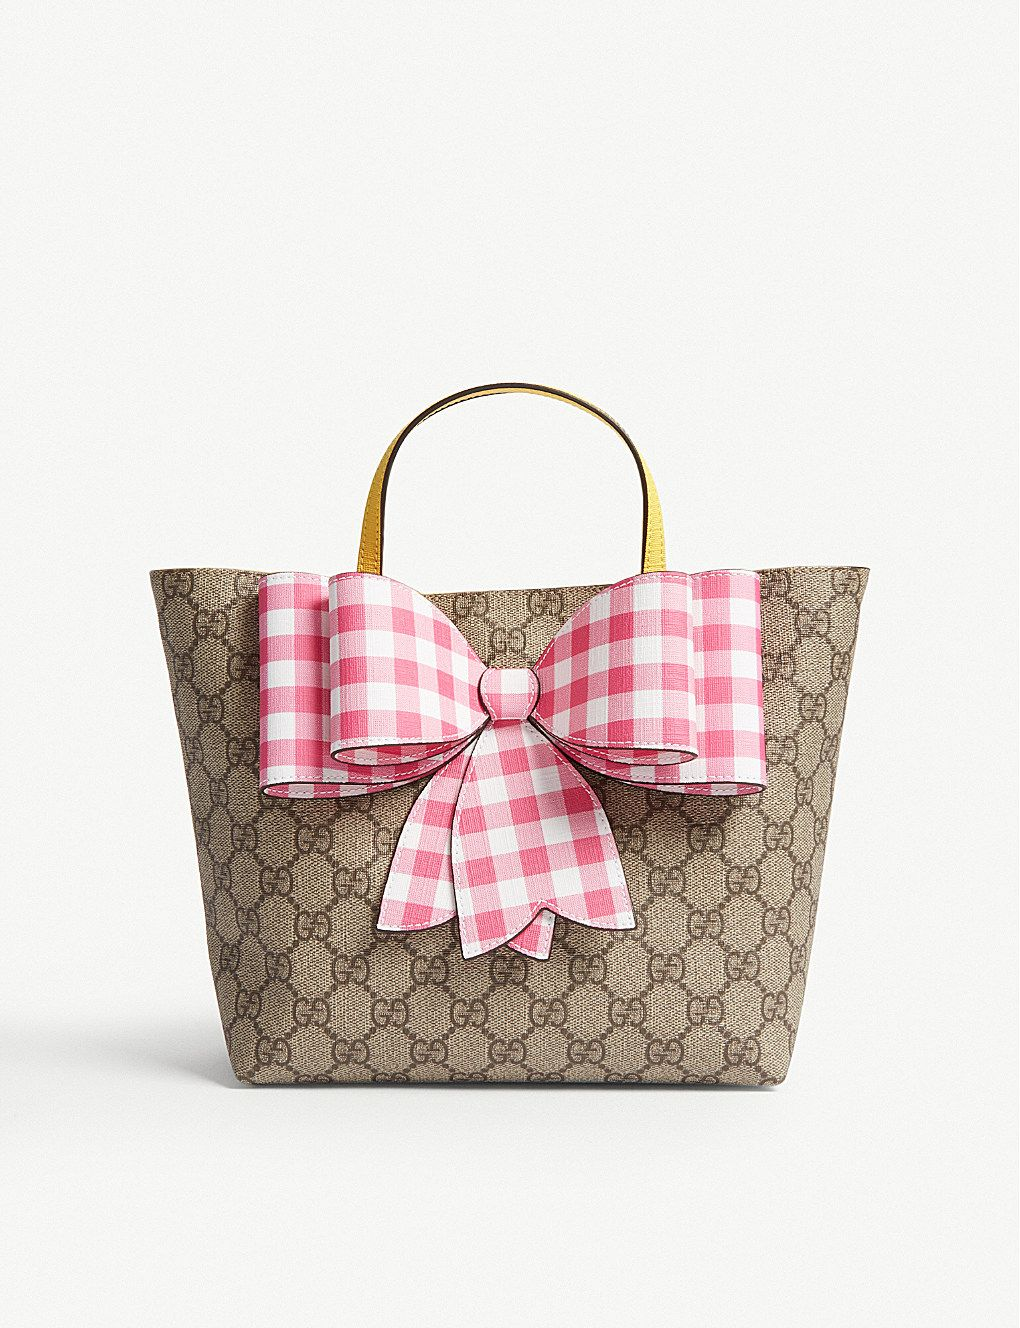 5232cbdac9c7 GUCCI GG Supreme canvas bow tote bag | Bag it. | Bags, Tote Bag ...